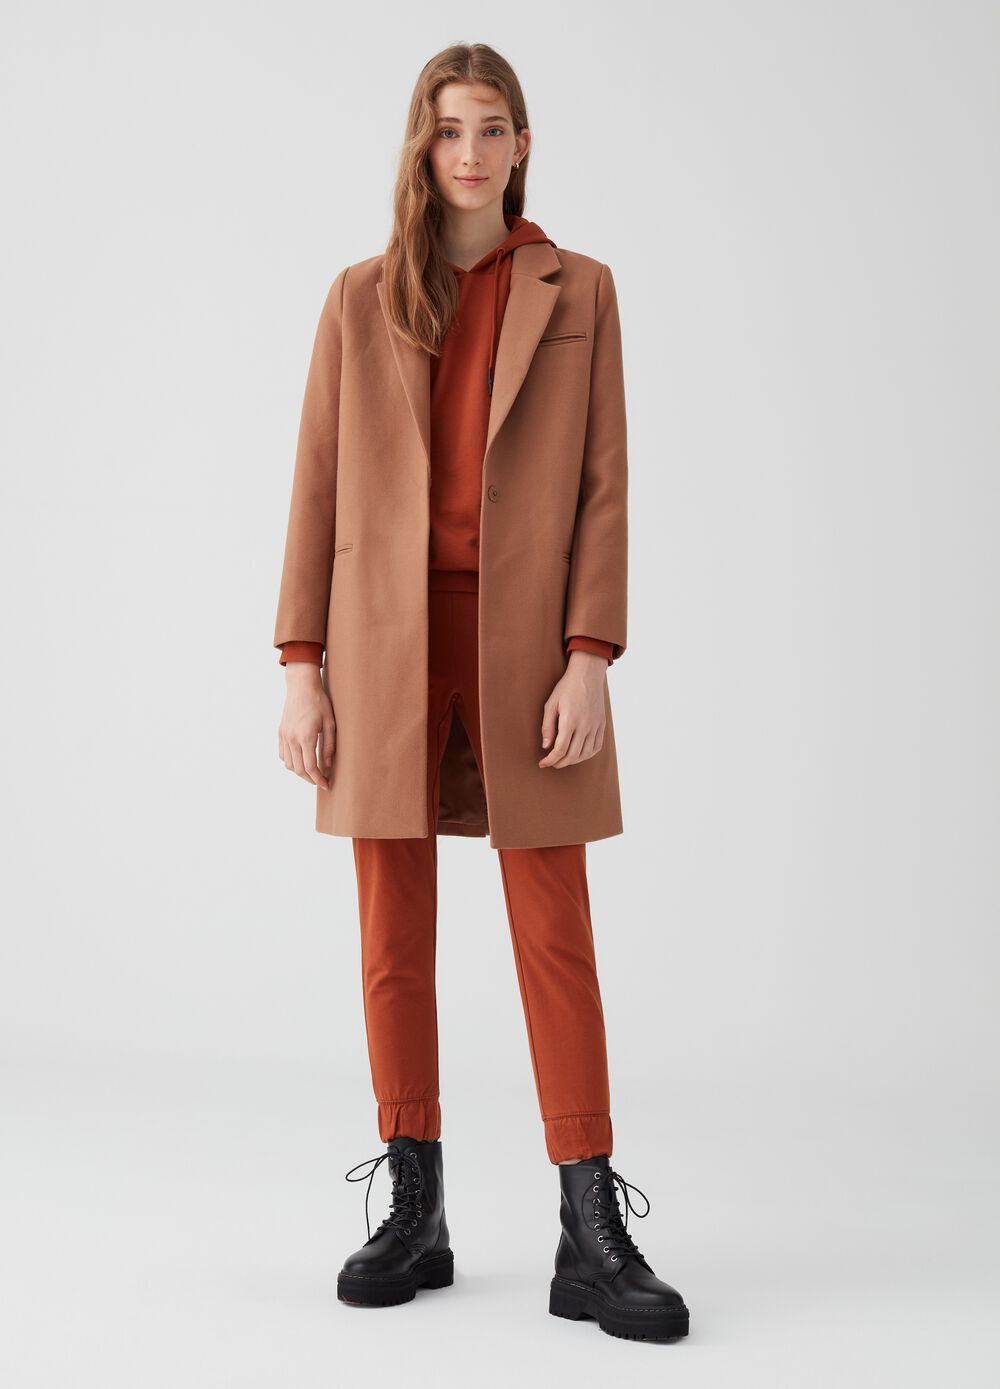 Coat with lapels, pockets and button